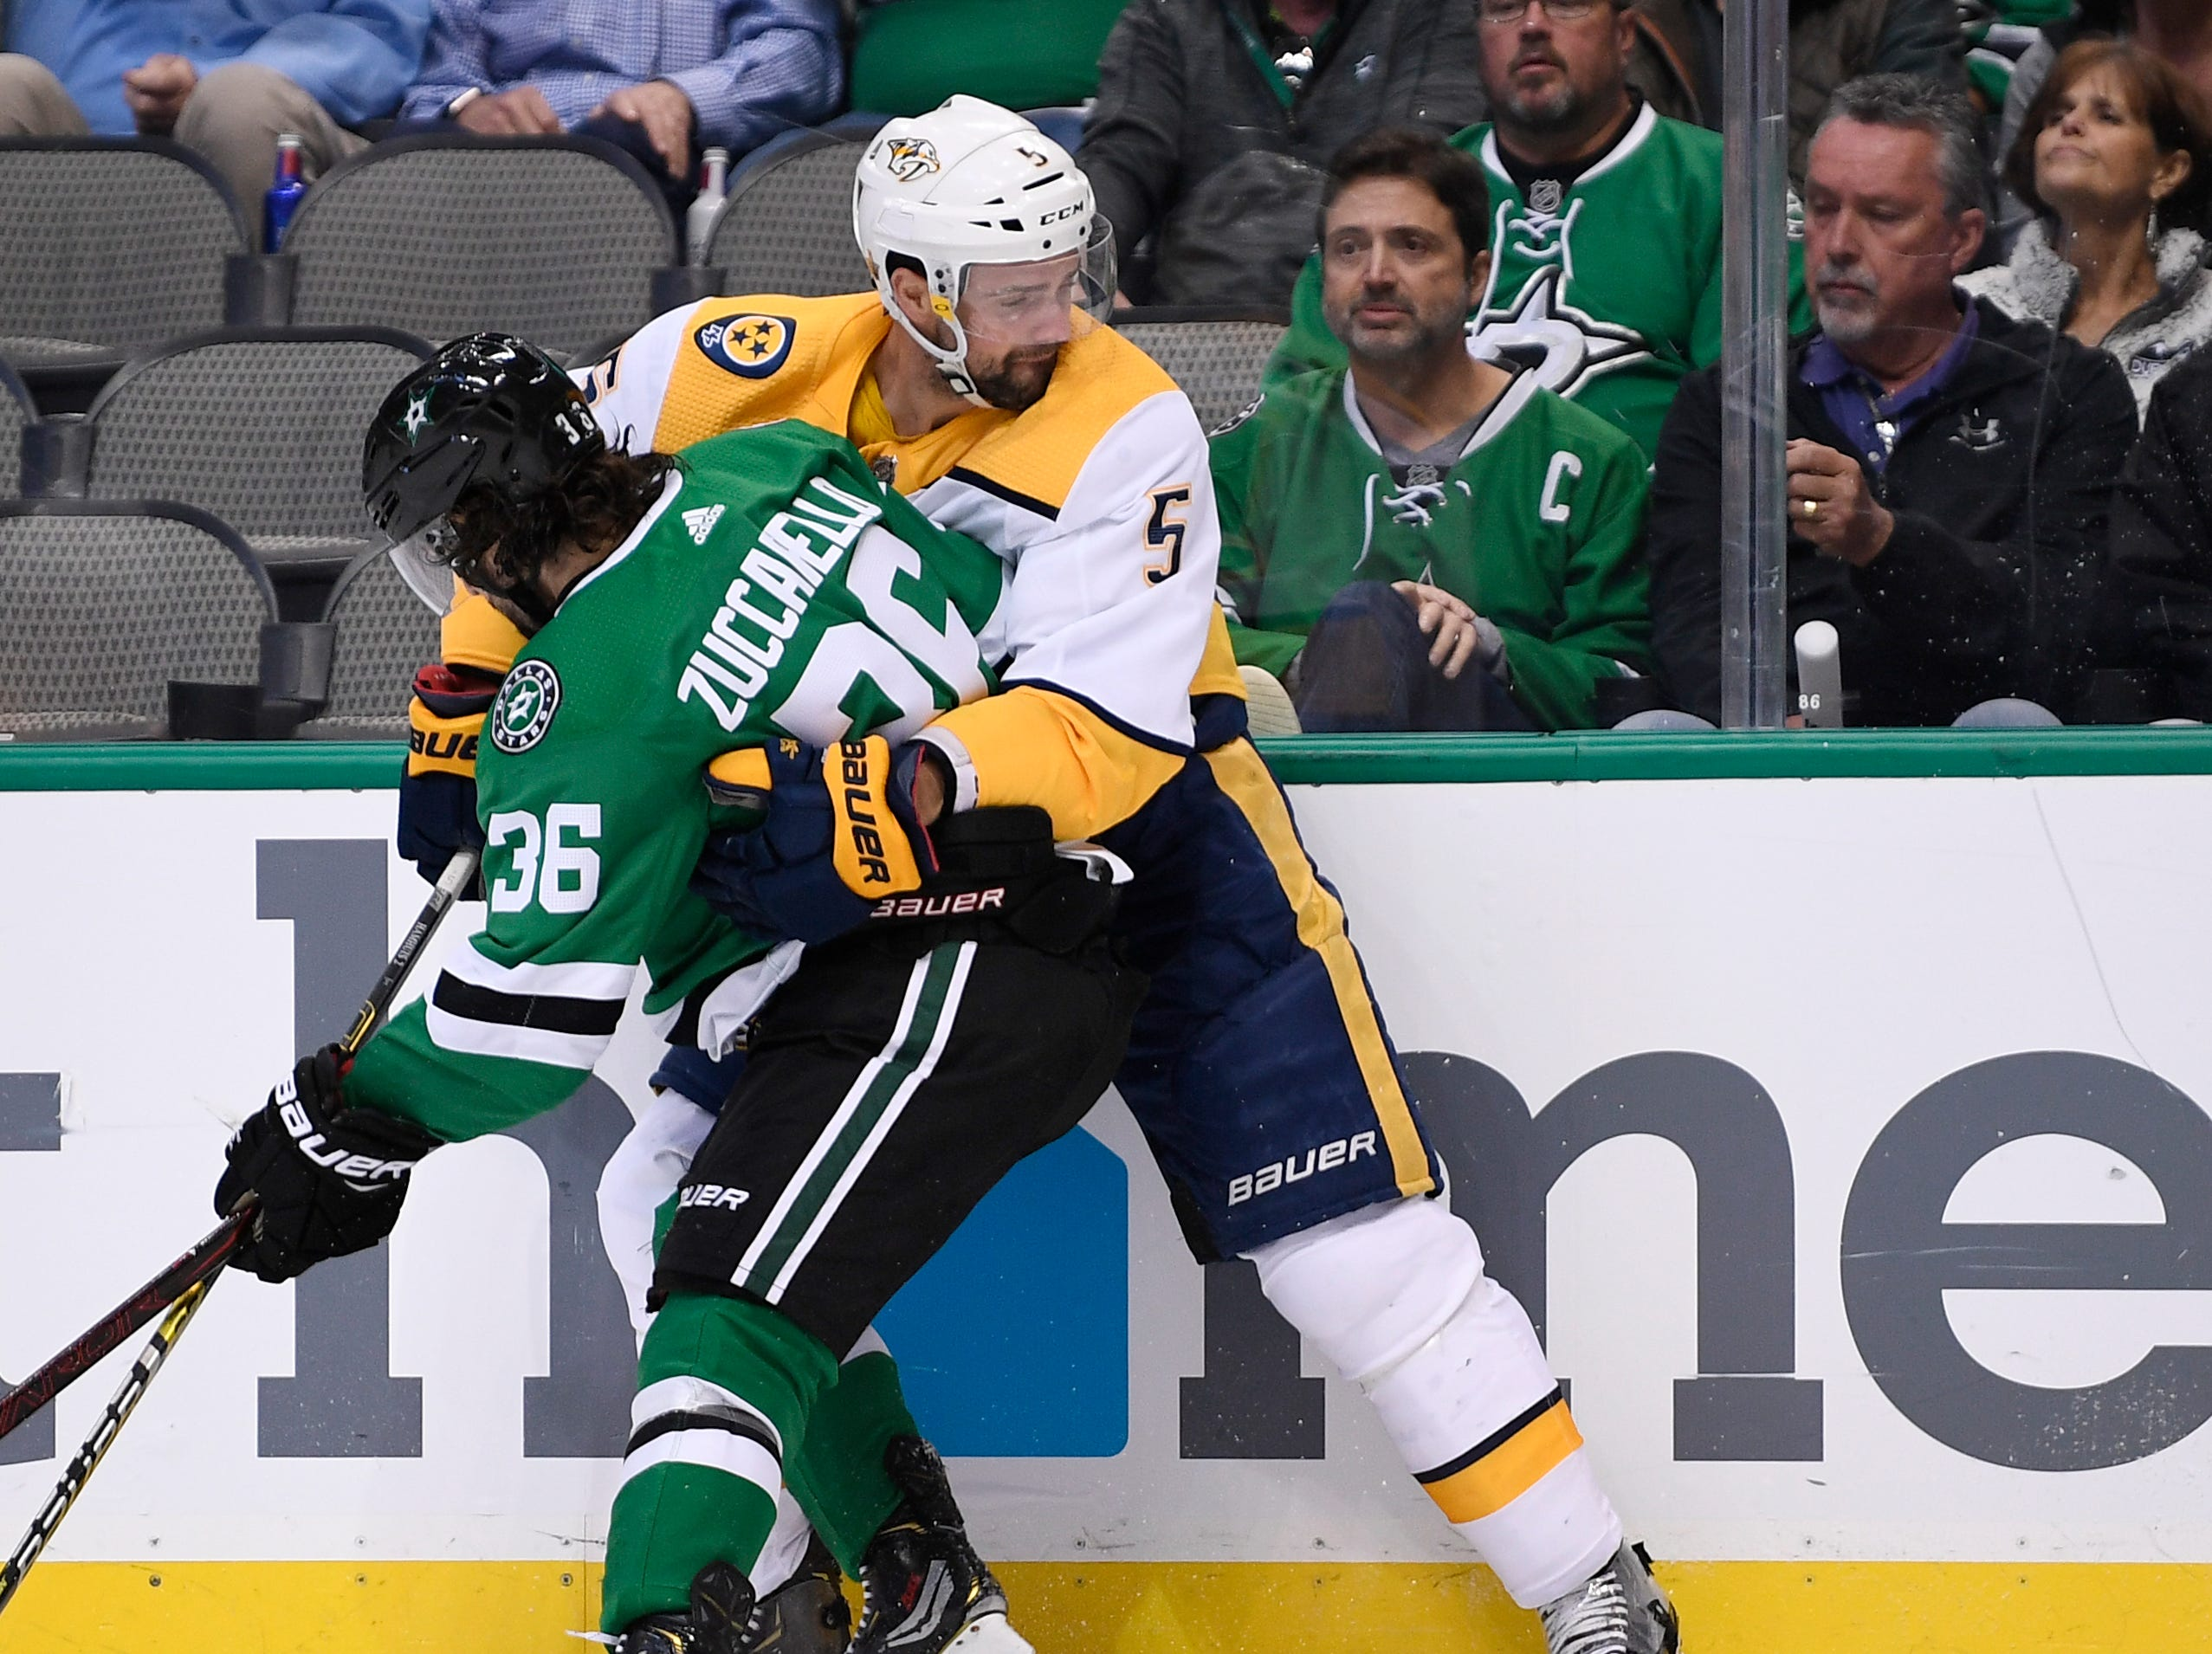 Nashville Predators defenseman Dan Hamhuis (5) and Dallas Stars center Mats Zuccarello (36) battle along the boards during the second period of the divisional semifinal game at the American Airlines Center in Dallas, Texas, Monday, April 22, 2019.